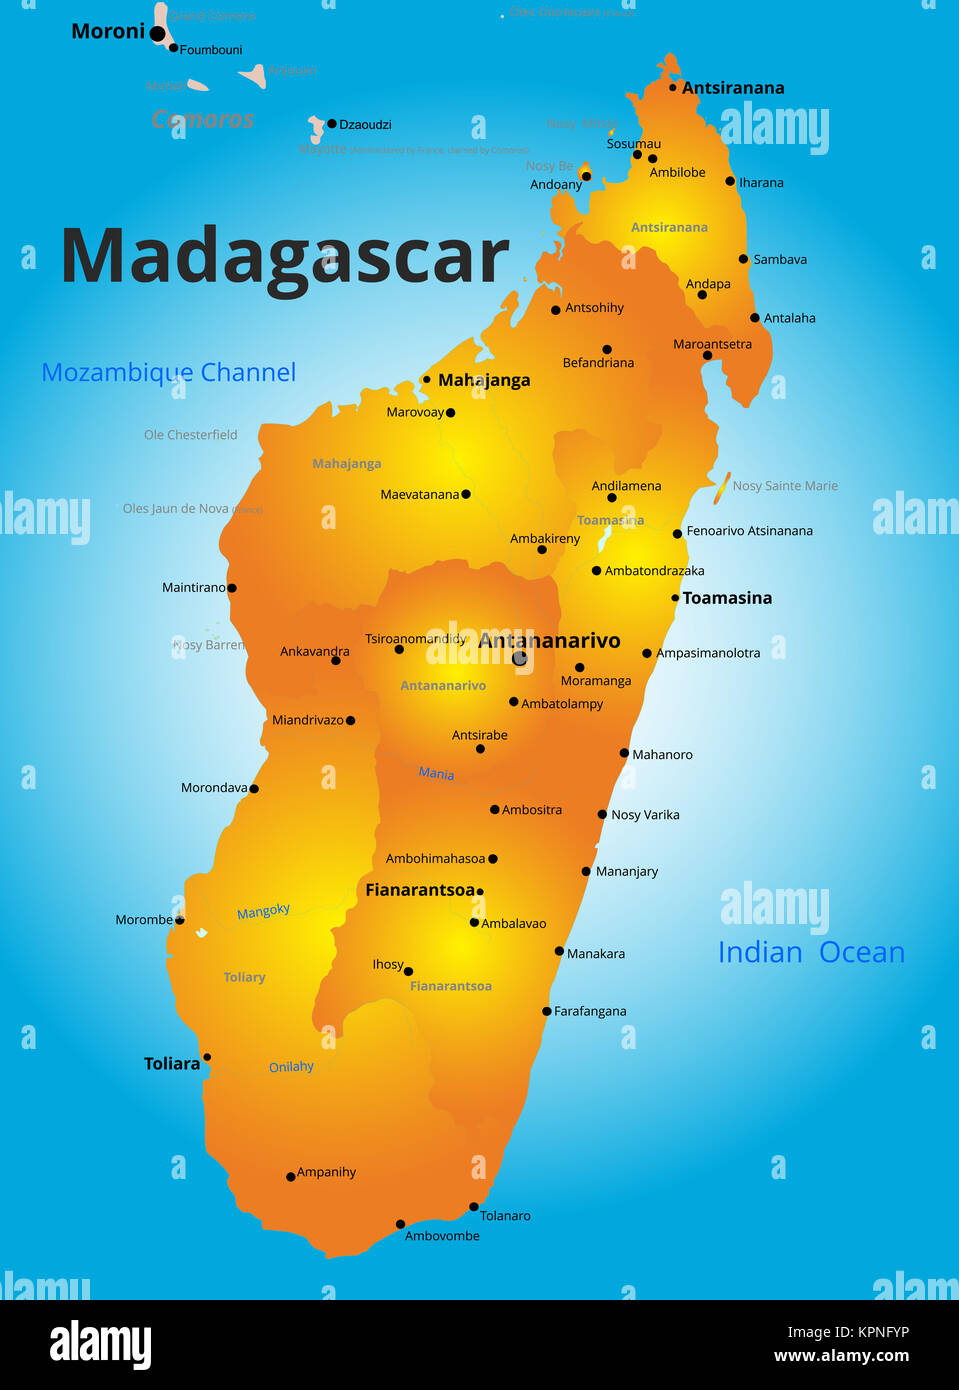 color map of Madagascar country Stock Photo 168889274 Alamy